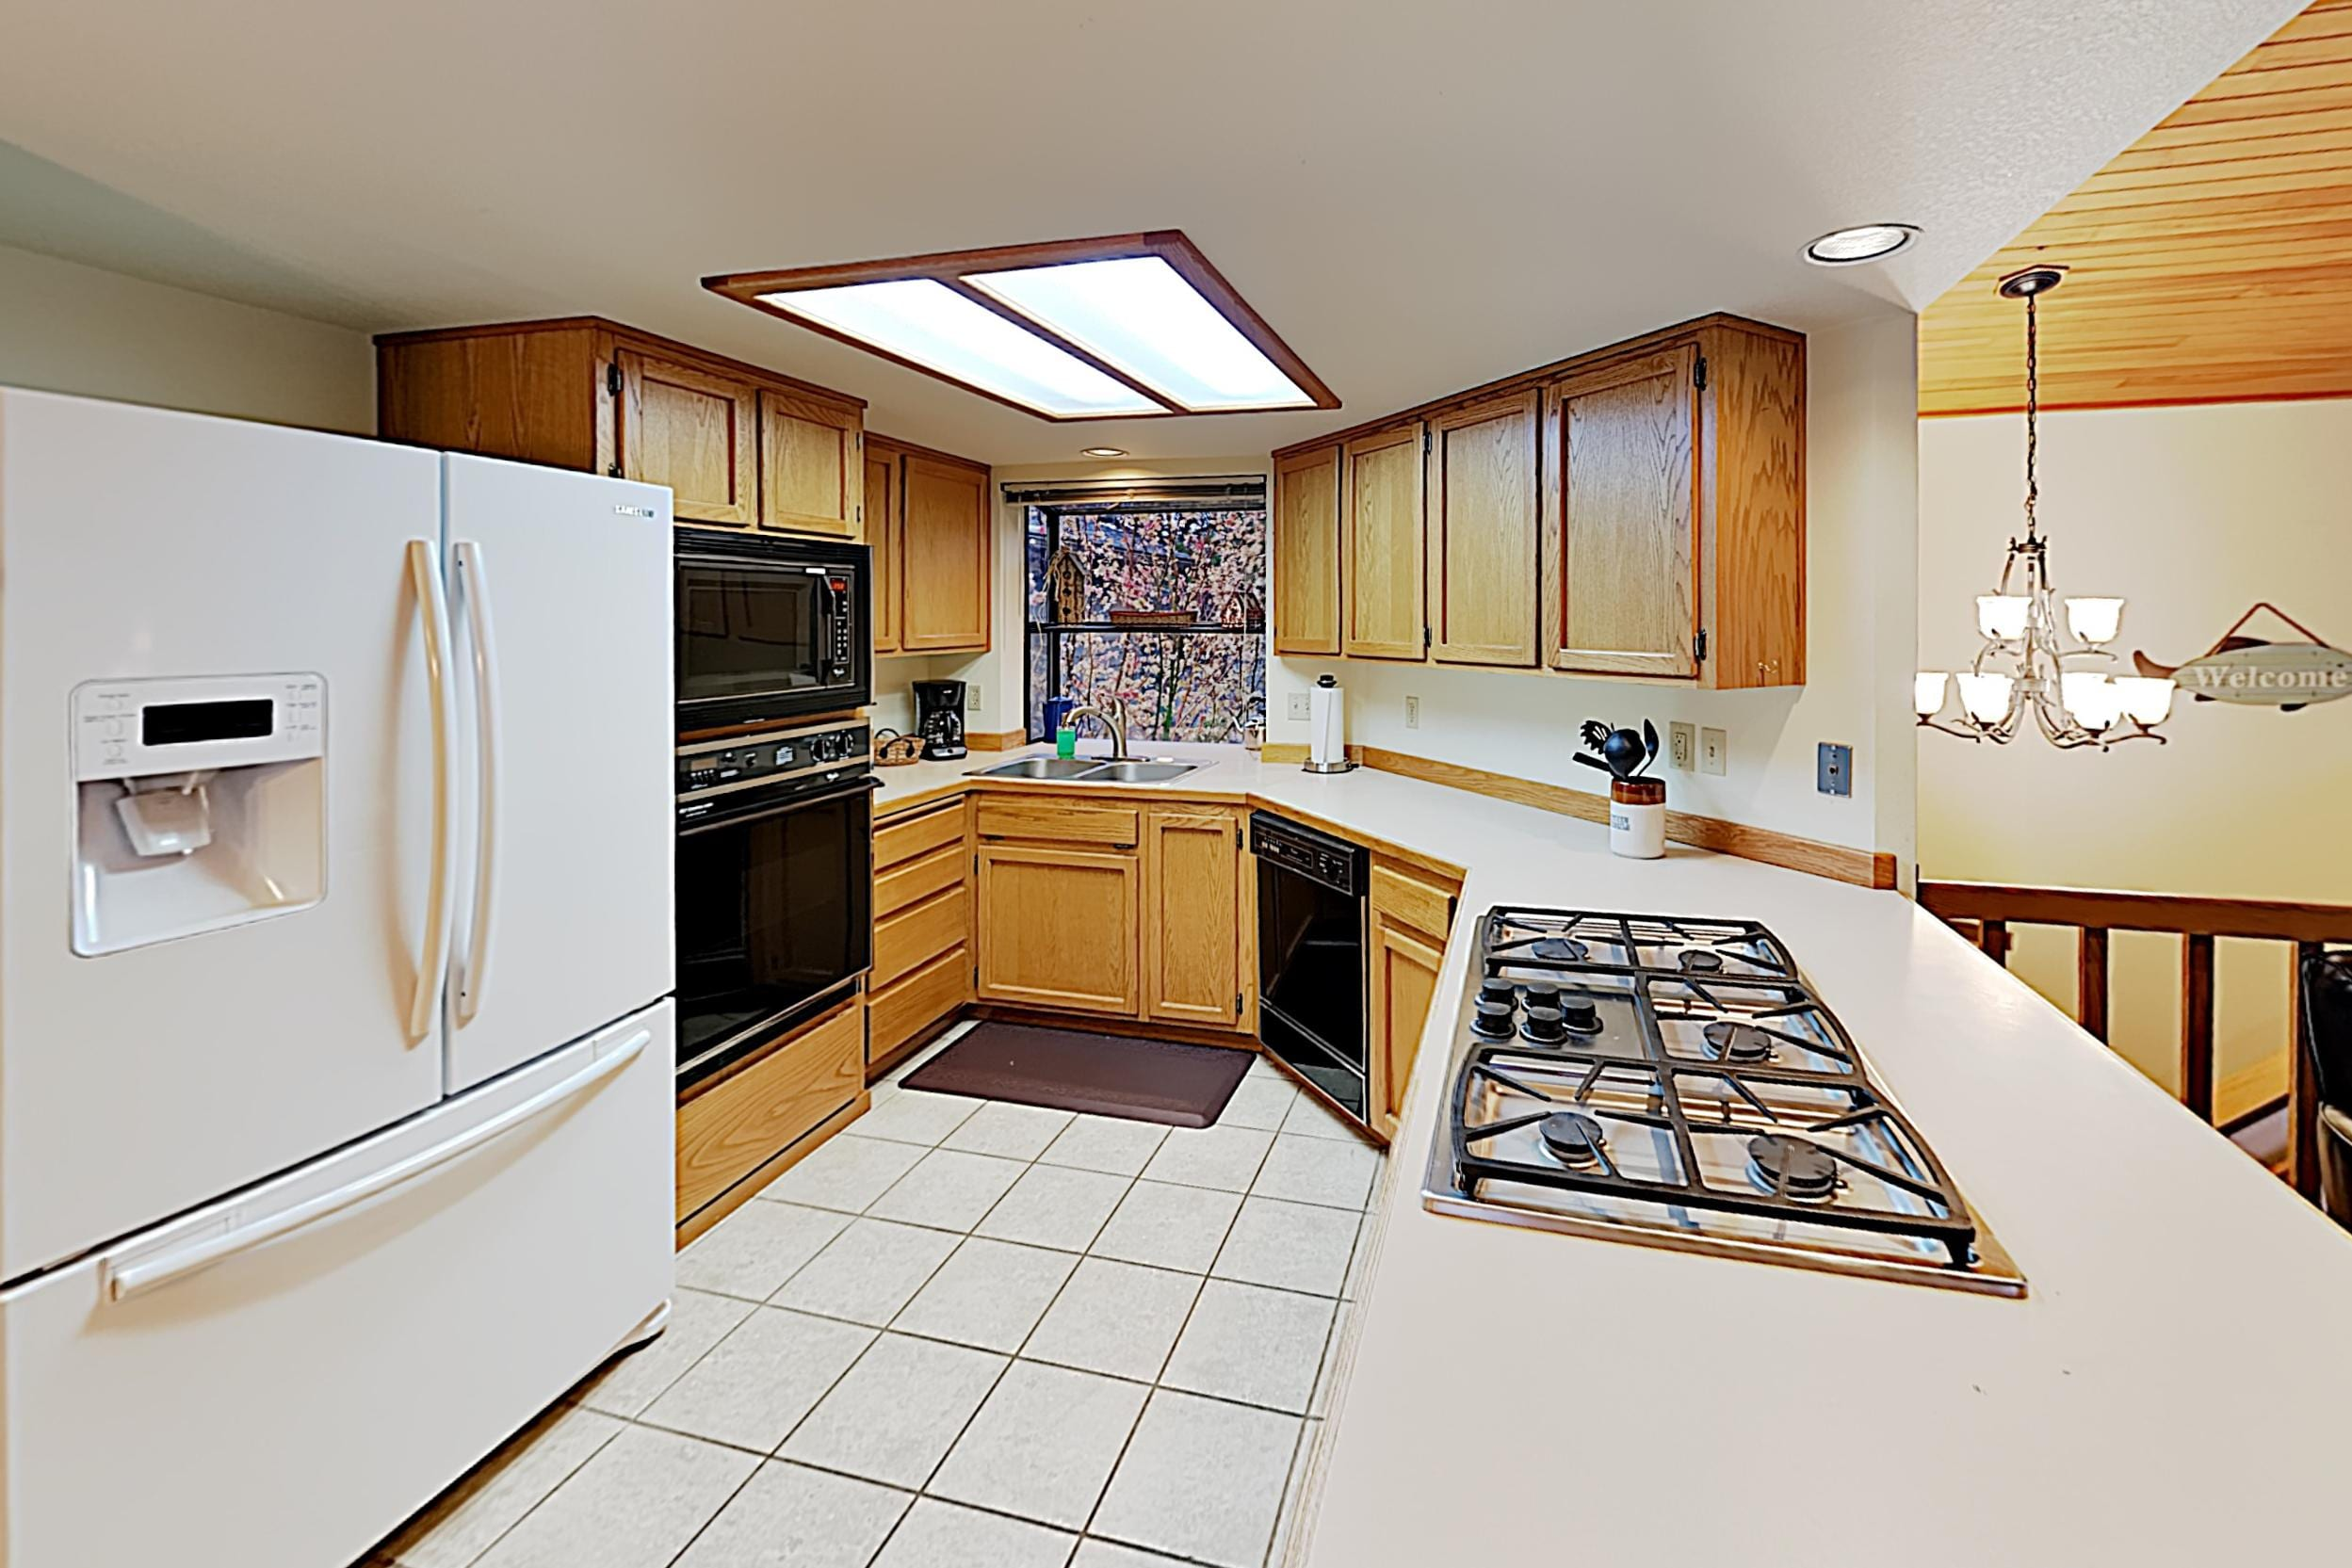 The chef in your group will appreciate the kitchen, equipped with a full suite of appliances.